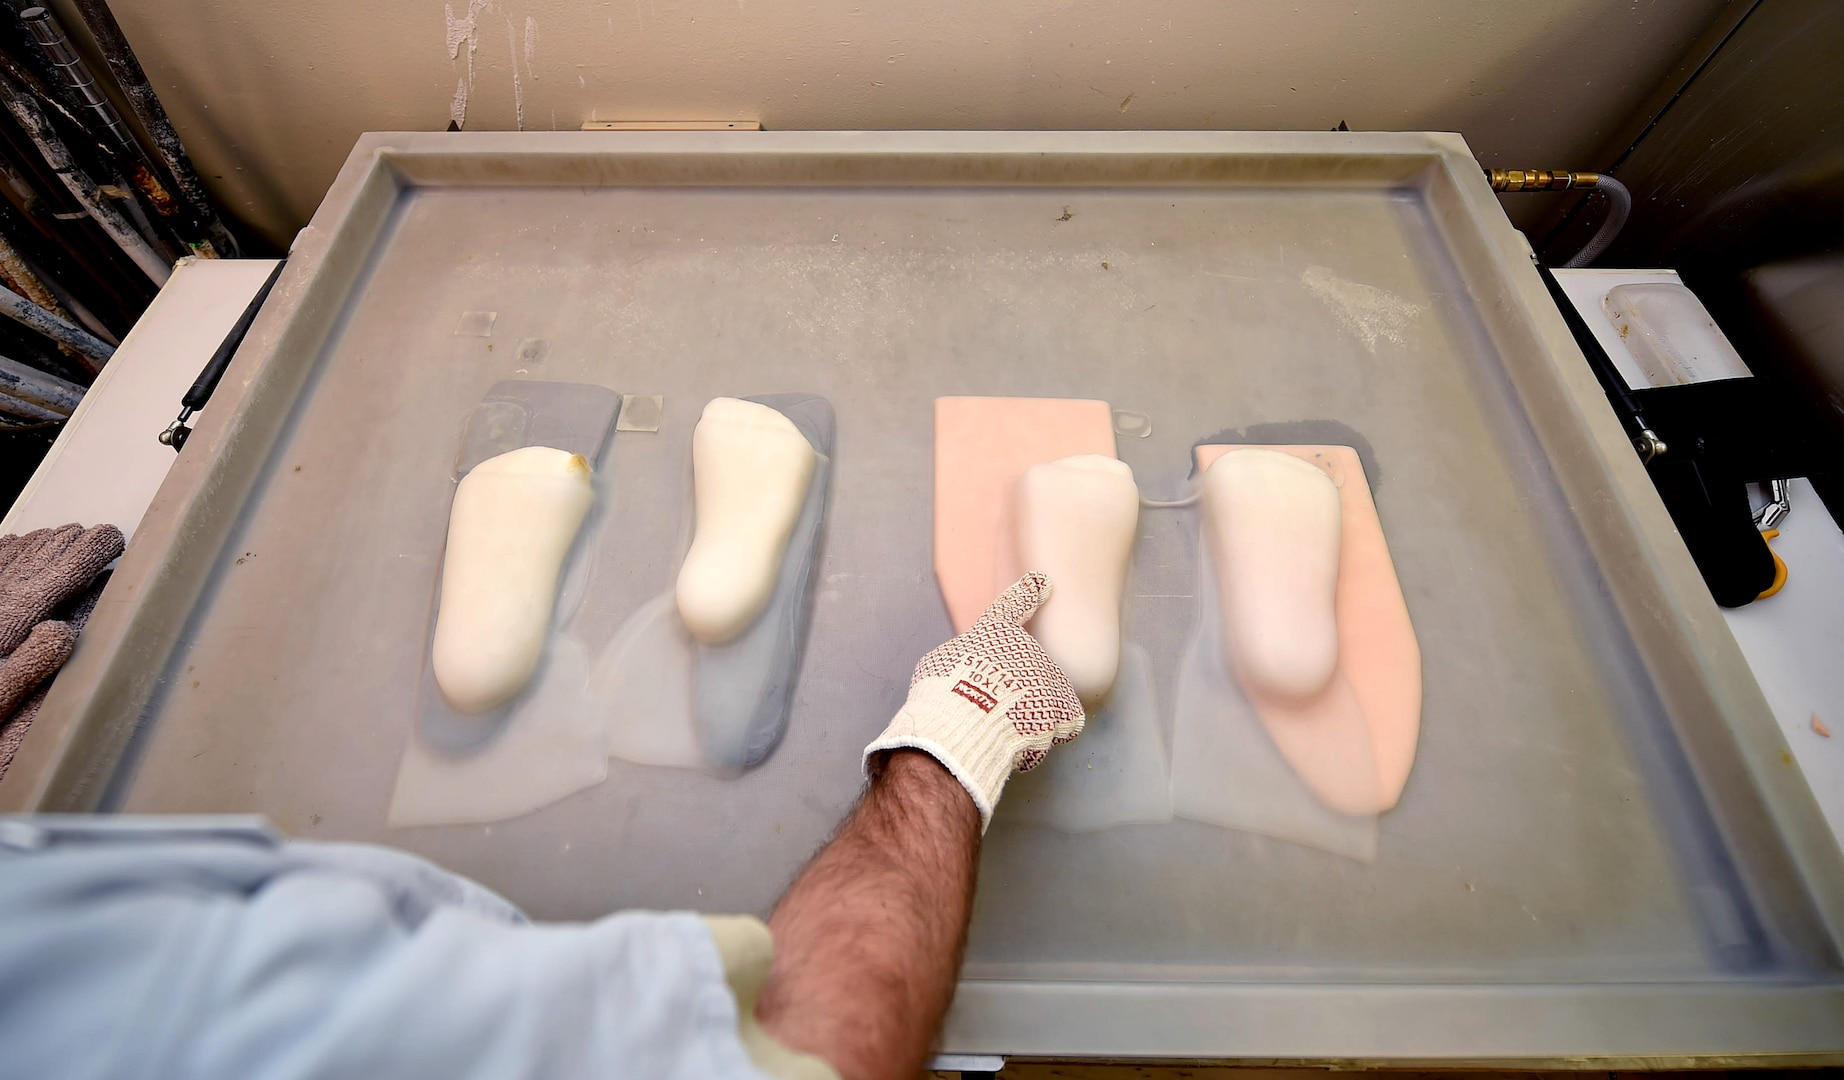 Staff Sgt. Devin Rudd, a student in the orthotics program, checks to see if the plastic for a foot orthoses has settled at the Wilford Hall Ambulatory Surgical Center, Joint Base San Antonio-Lackland, Texas, Aug. 24, 2016.(U.S. Air Force photo/Staff Sgt. Jerilyn Quintanilla)